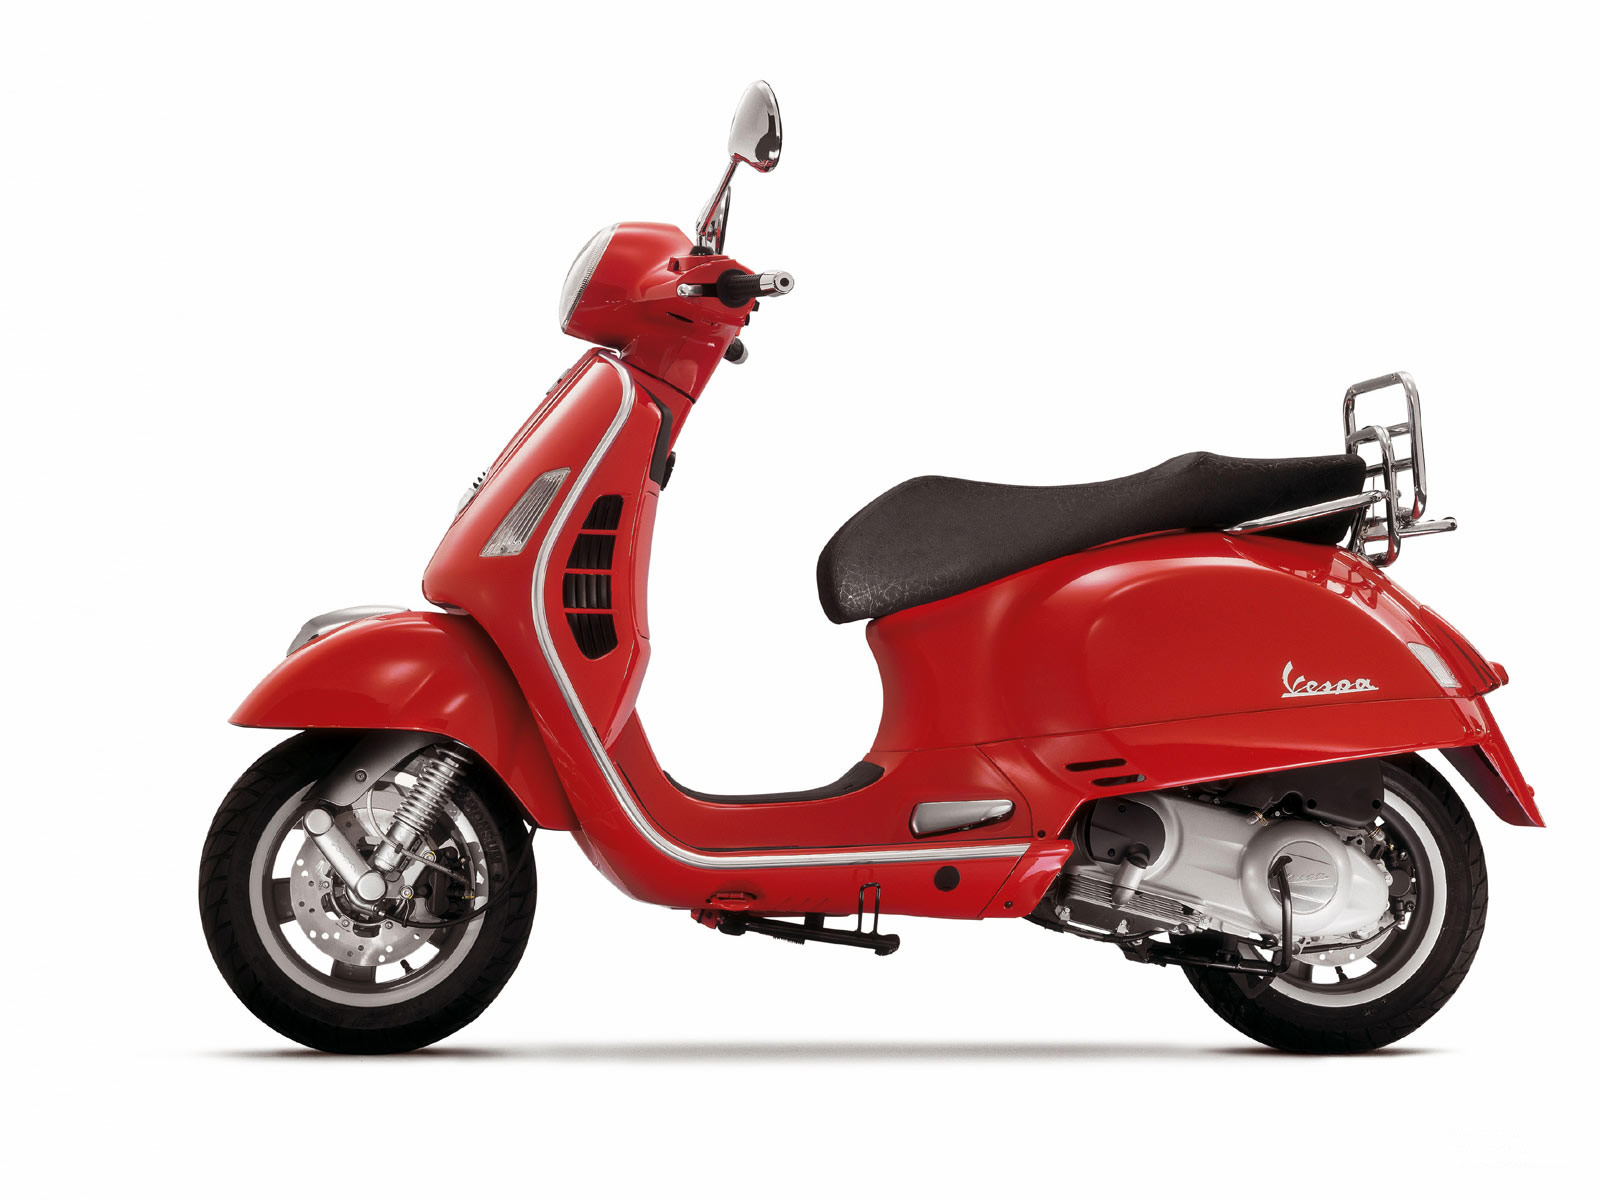 The Best And Comfortable Scooter Motor For Oldman I